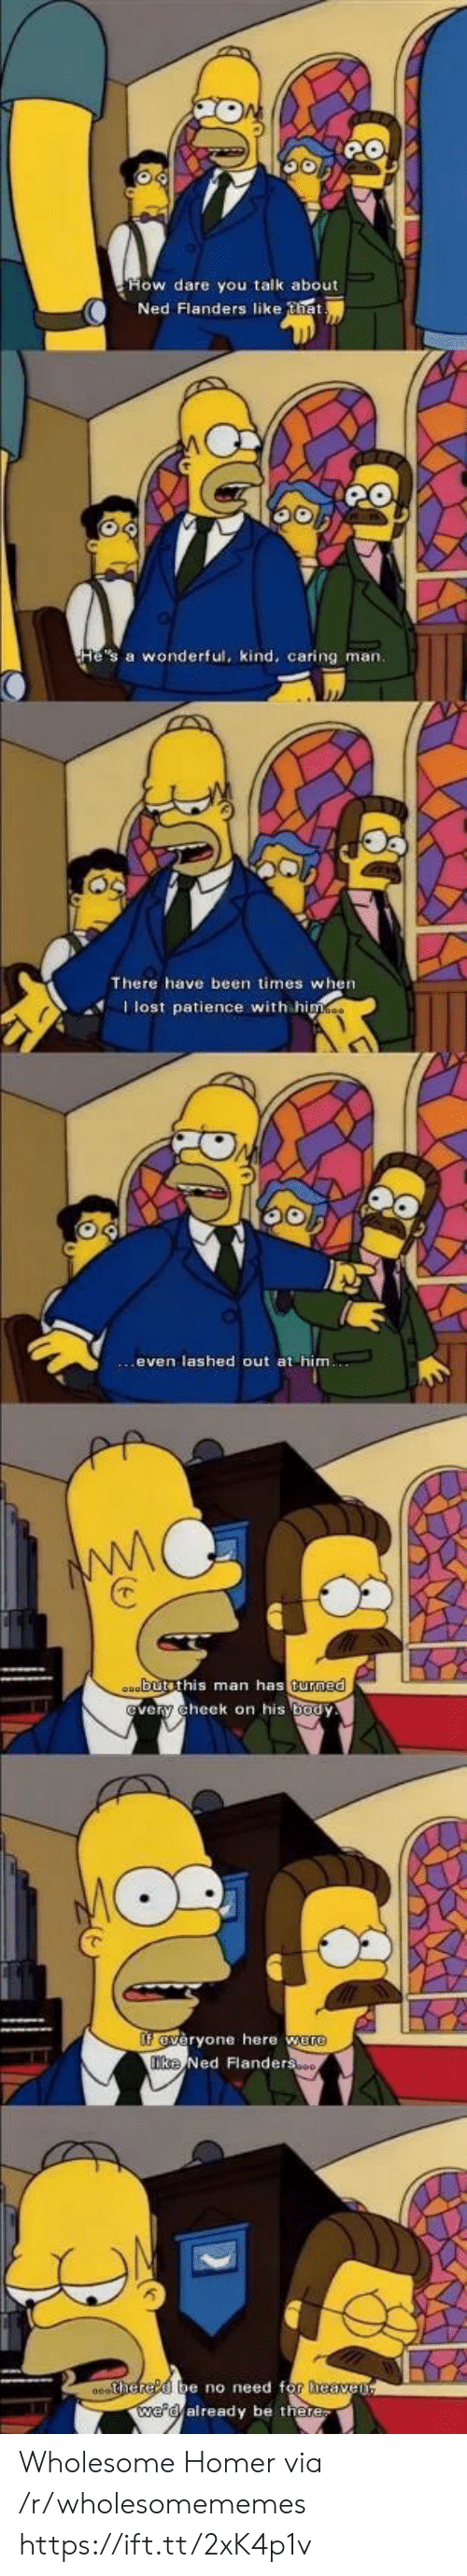 Patience: Ned Flanders like tia  He's a wonderful, kind, caring man.  There have been times when  Ilost patience with himes  oabutsthis man has turned  very cheek on his body  fveryone here were  Tke Ned Flanderso  0ehered be no need for heaven  we'd already be there Wholesome Homer via /r/wholesomememes https://ift.tt/2xK4p1v